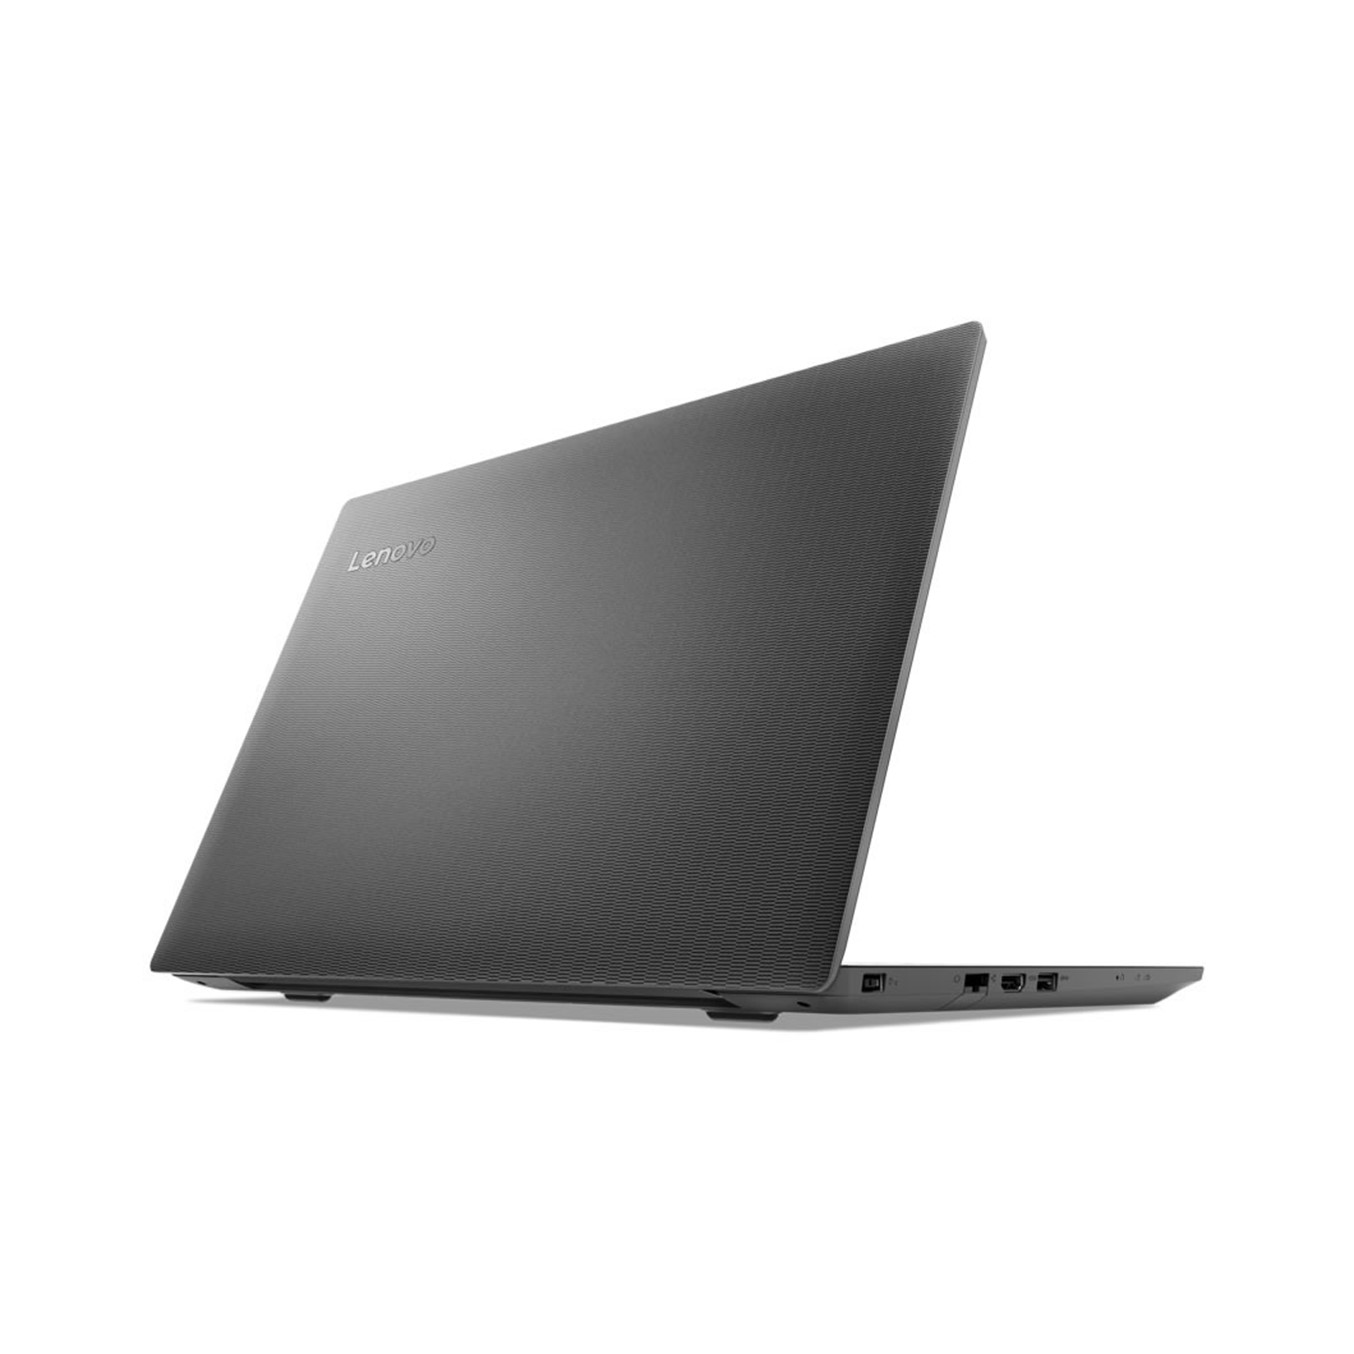 Porttil Lenovo V110-15ikb 81hn00e1sp - I5-7200u 2.5 Ghz - 4gb - 500gb - 15.6/39.6cm Hd - Dvd Rw - Wifi Ac - Bt - Hdmi - W10 0.0